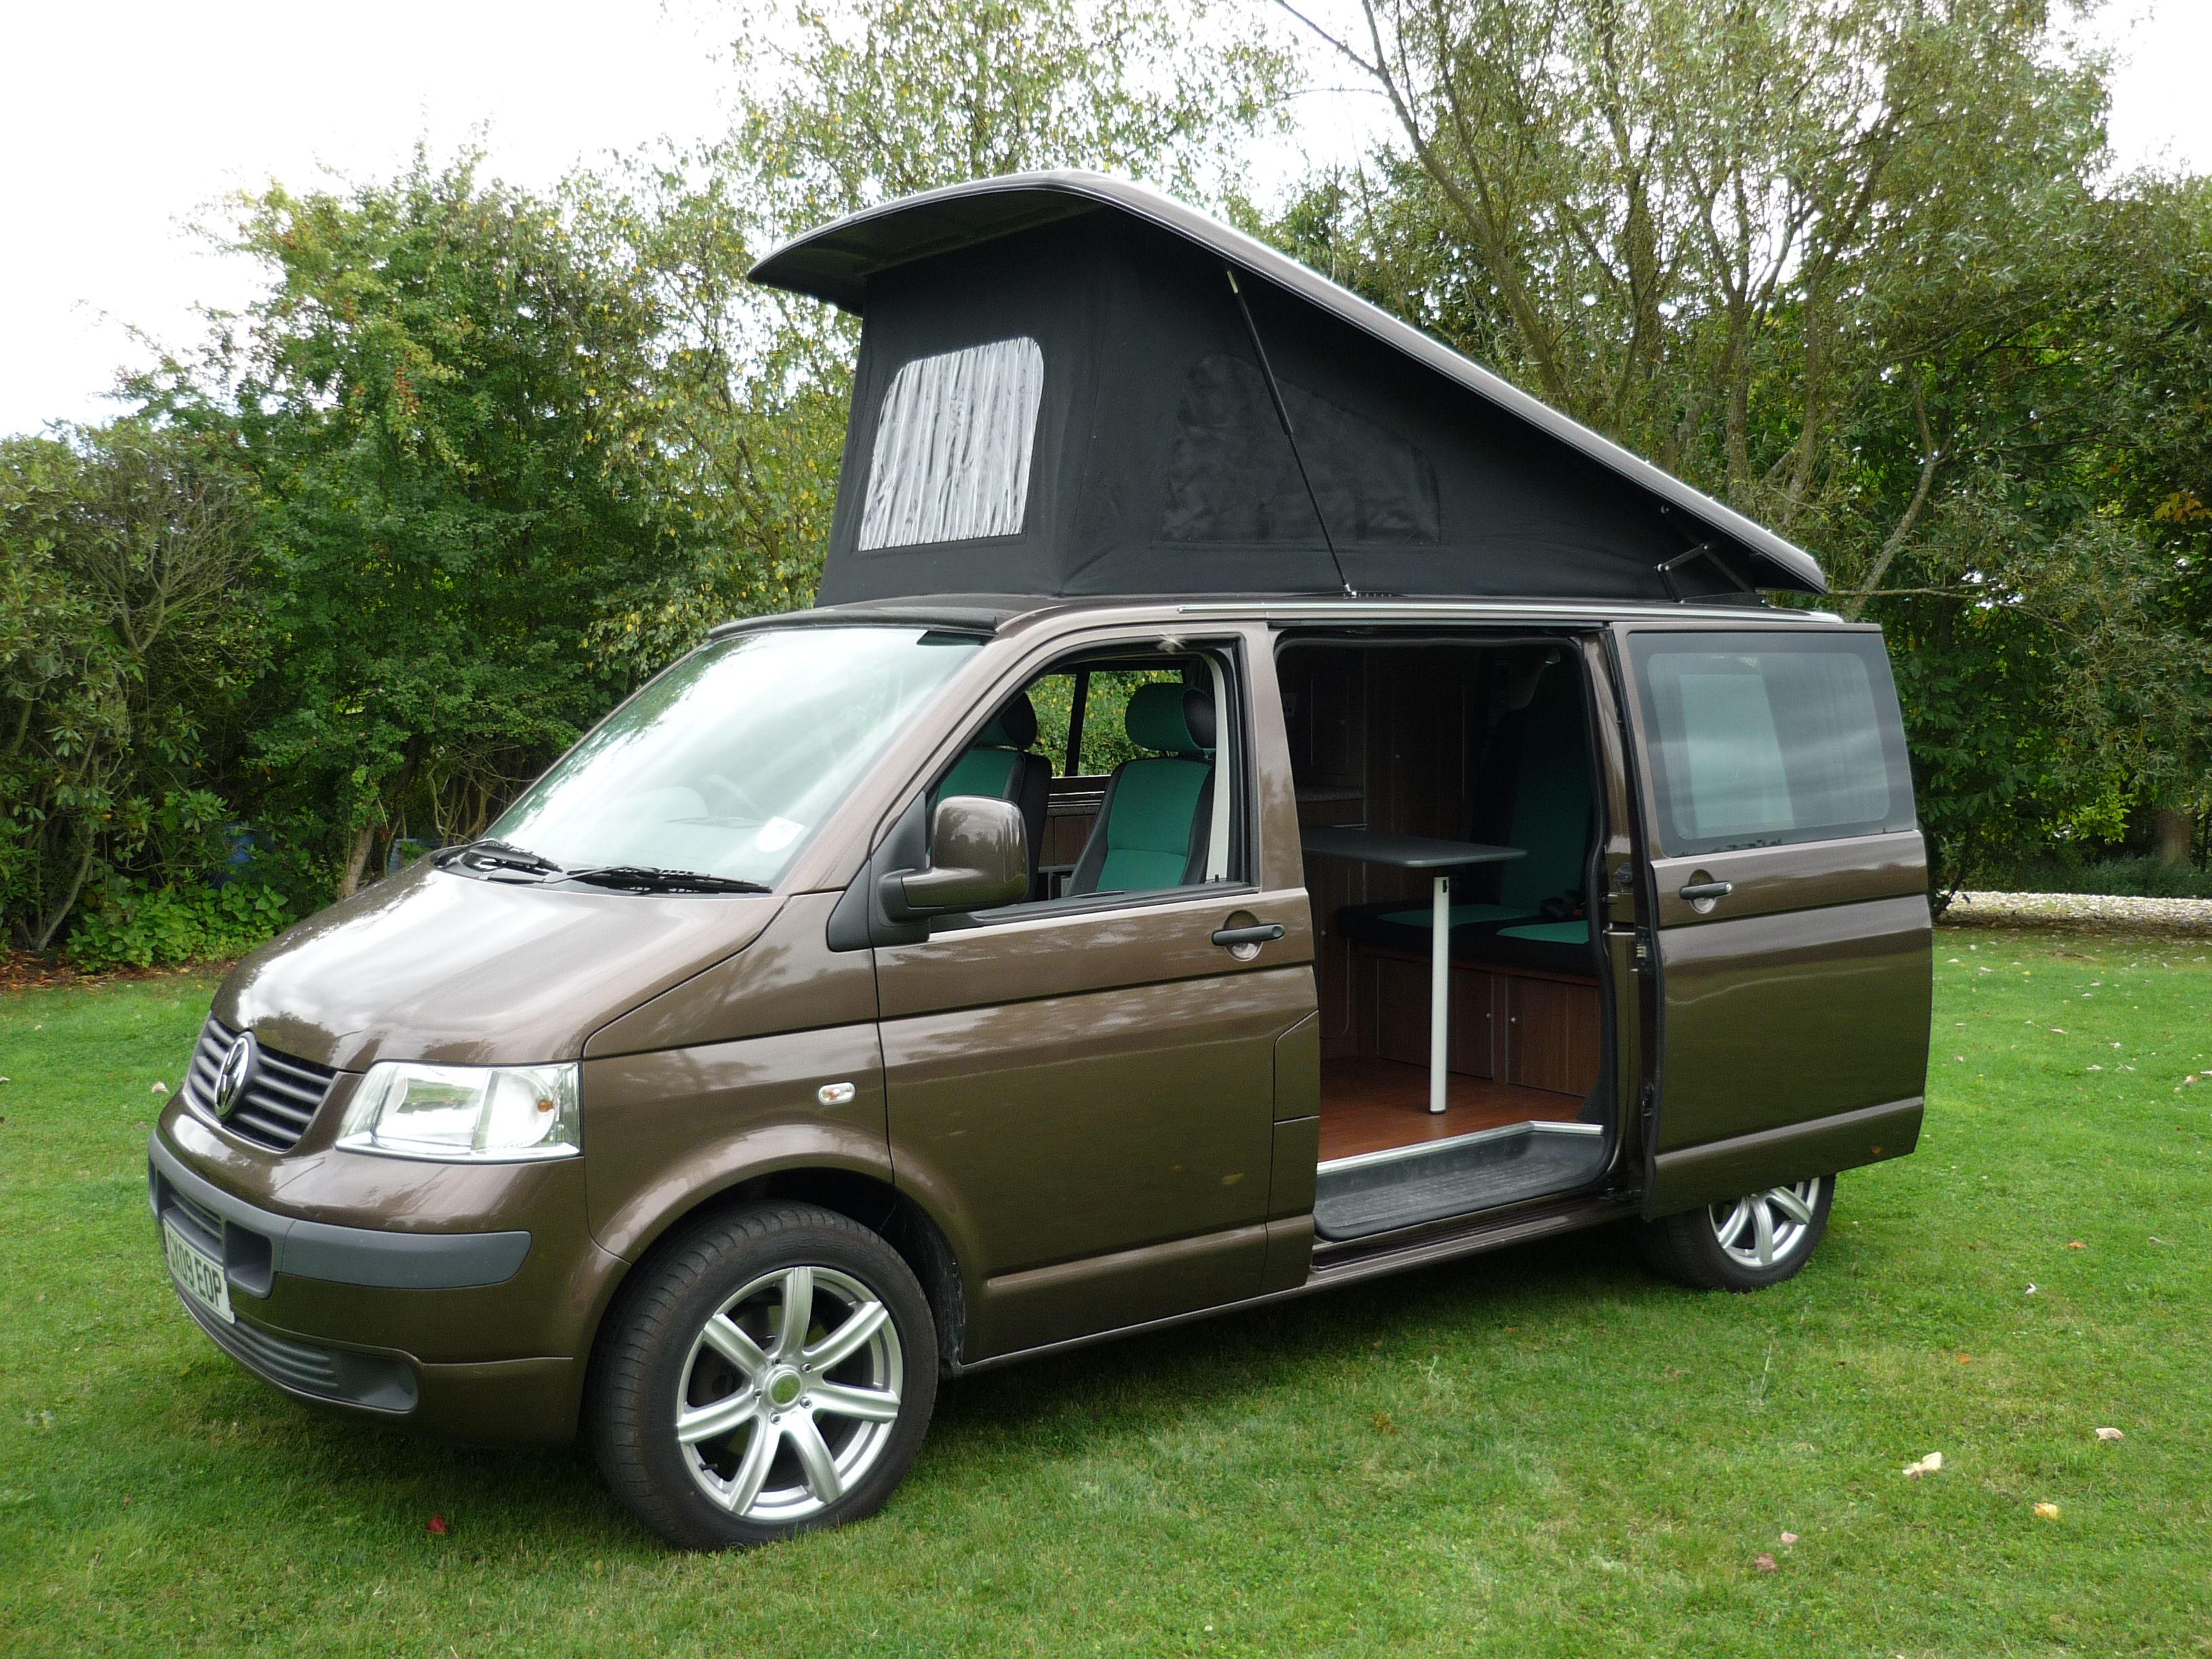 The Ever Popular VW T5 Campervan Conversion Caledonia From Sussex Campervans This One